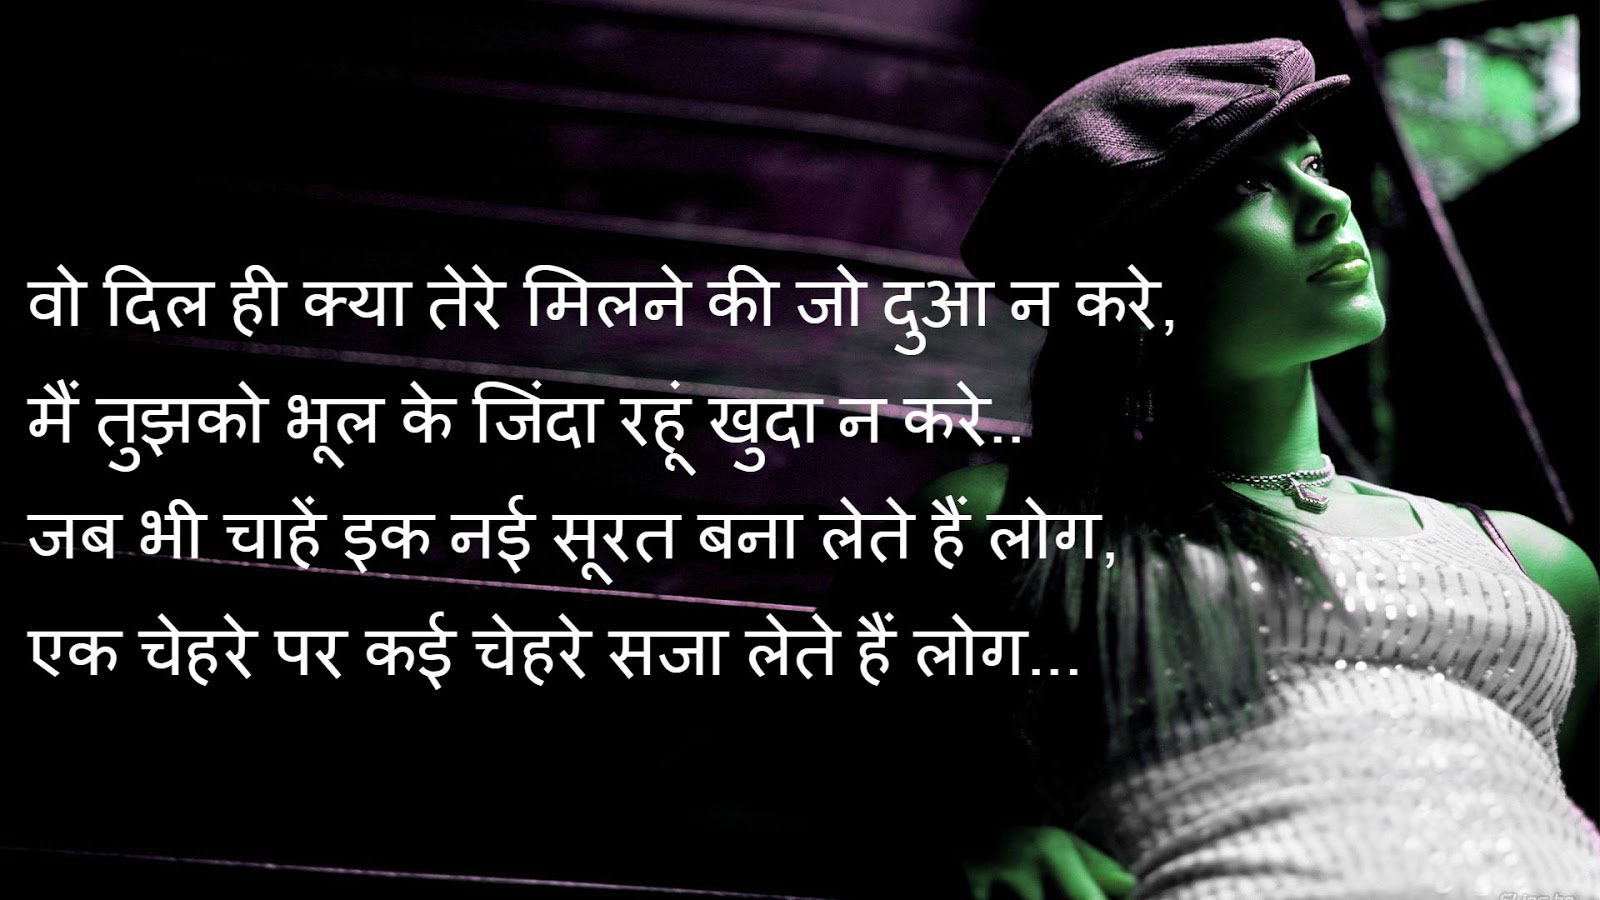 Breakup Quotes In Hindi 2